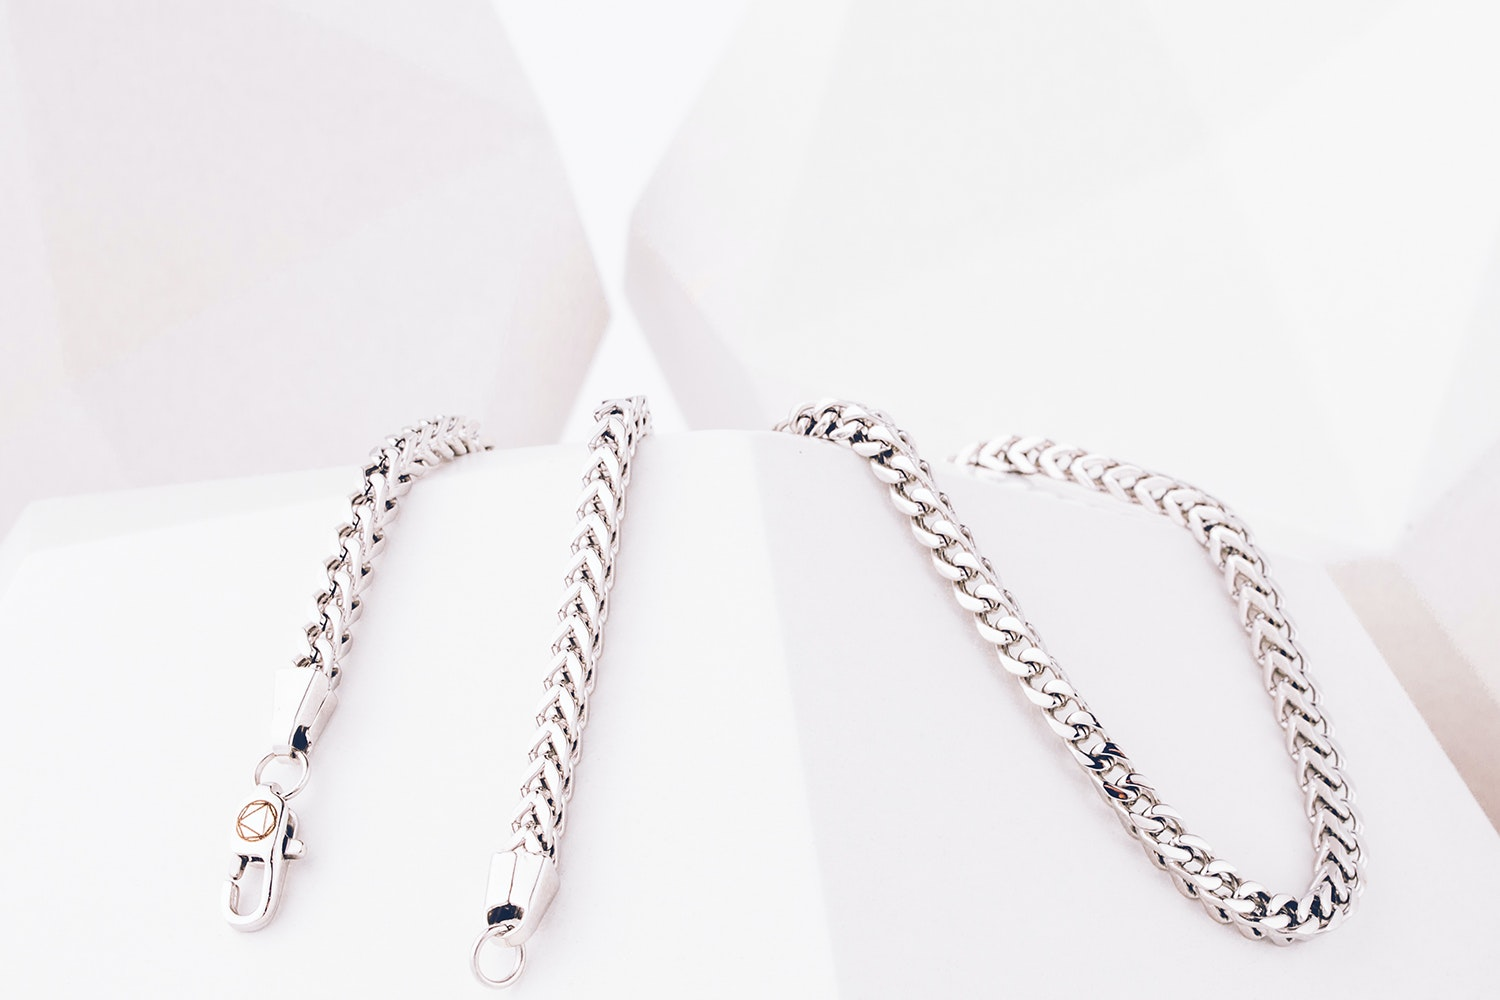 EXSO Rings & Necklaces